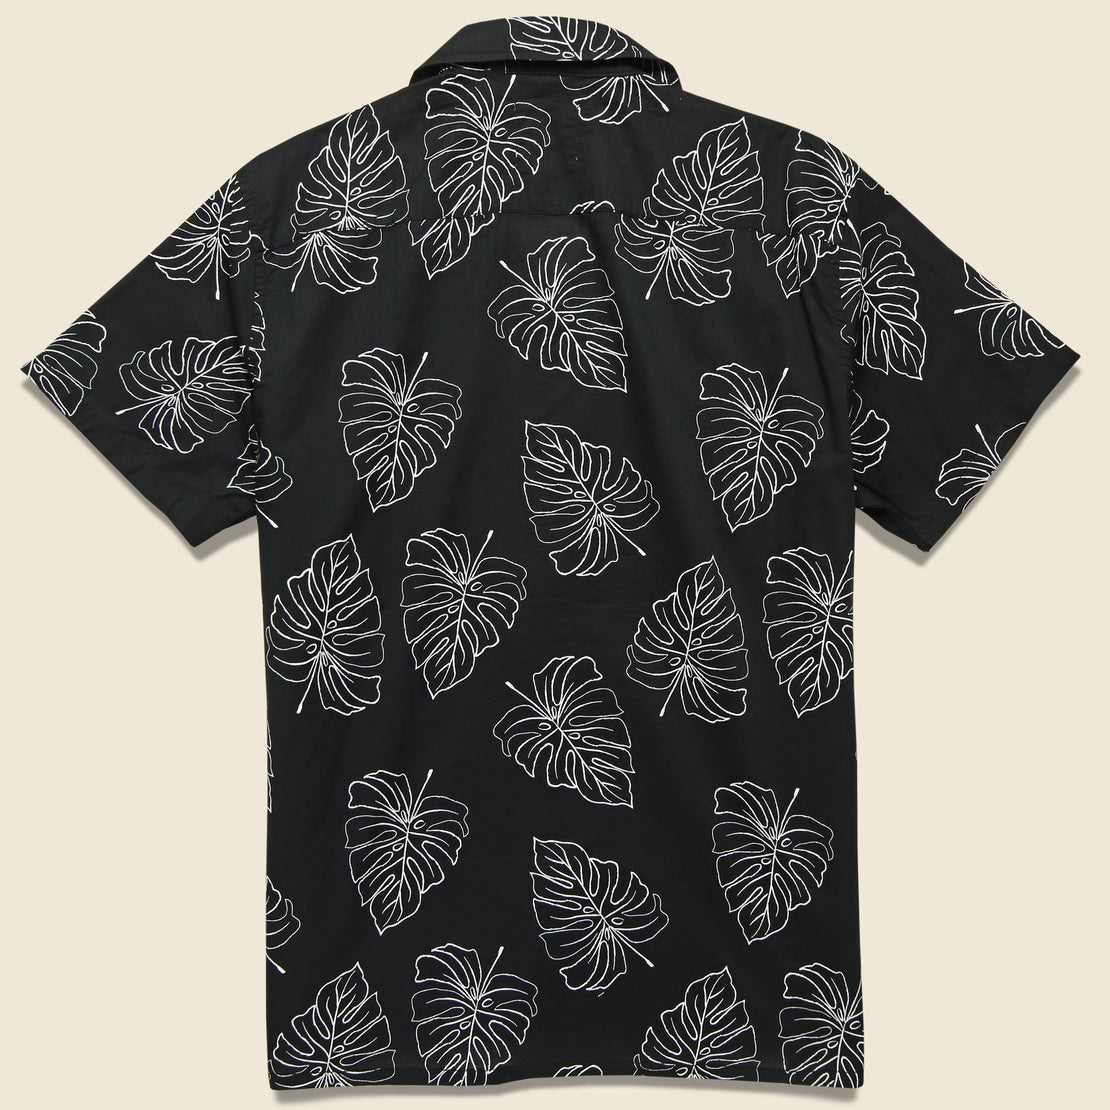 Monstera Leaf Shirt - Black